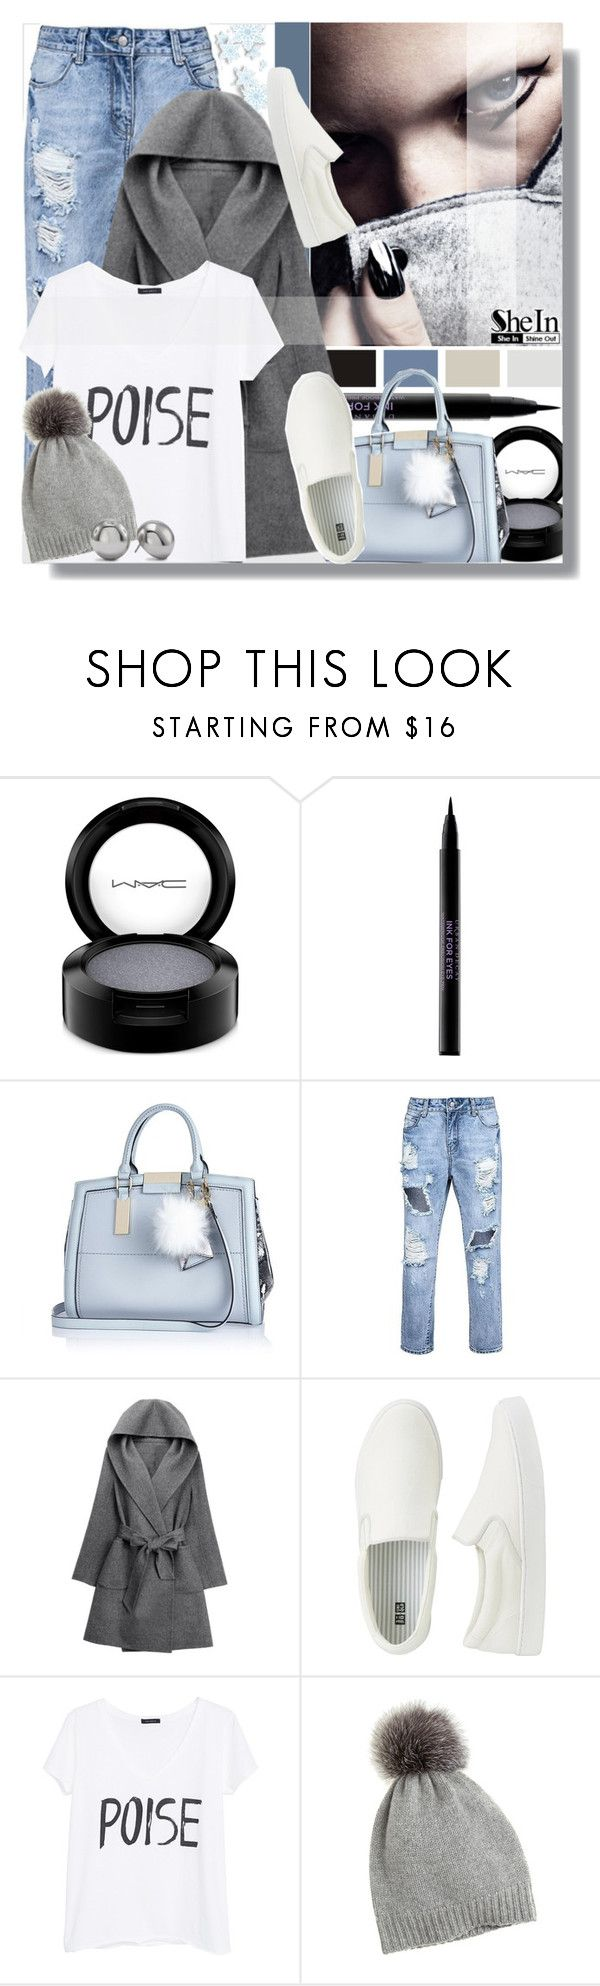 SheIn Grey Coat by prigaut on Polyvore featuring MANGO, WithChic, Uniqlo, River Island, Chico's, Calypso St. Barth, MAC Cosmetics, Urban Decay, greycoat and shein